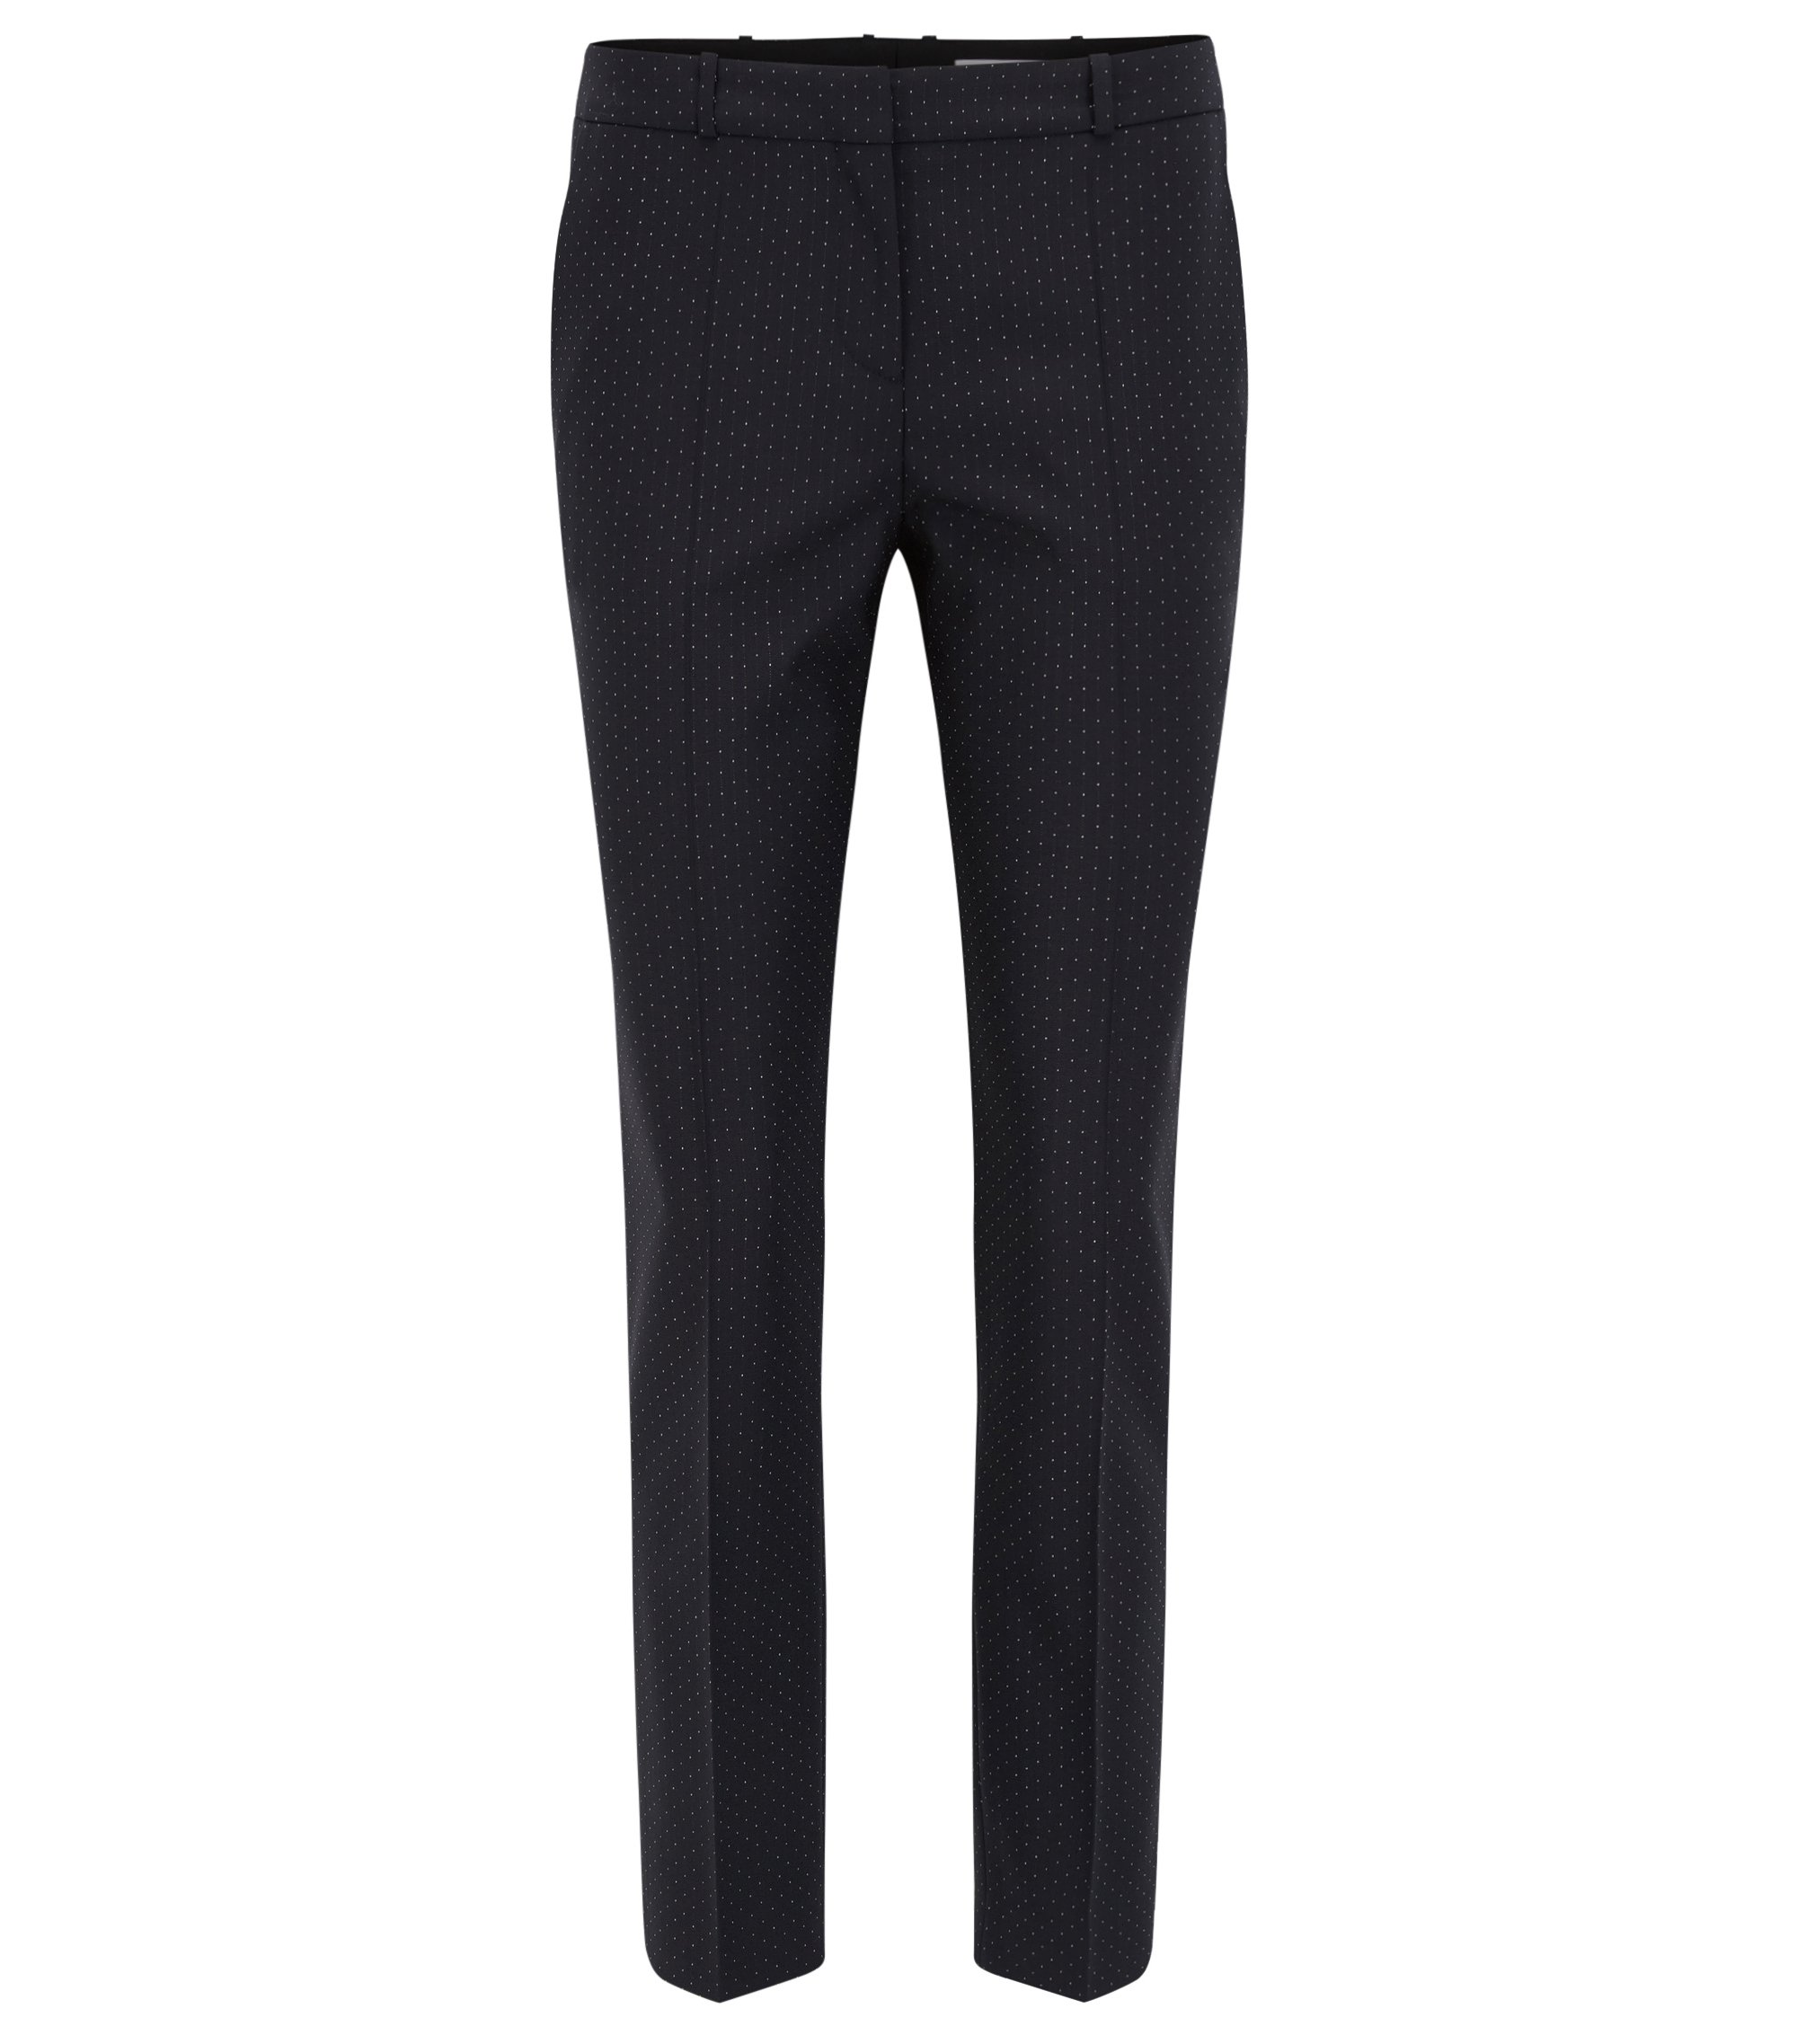 Slim-fit trousers in stretch dotted virgin wool, Patterned